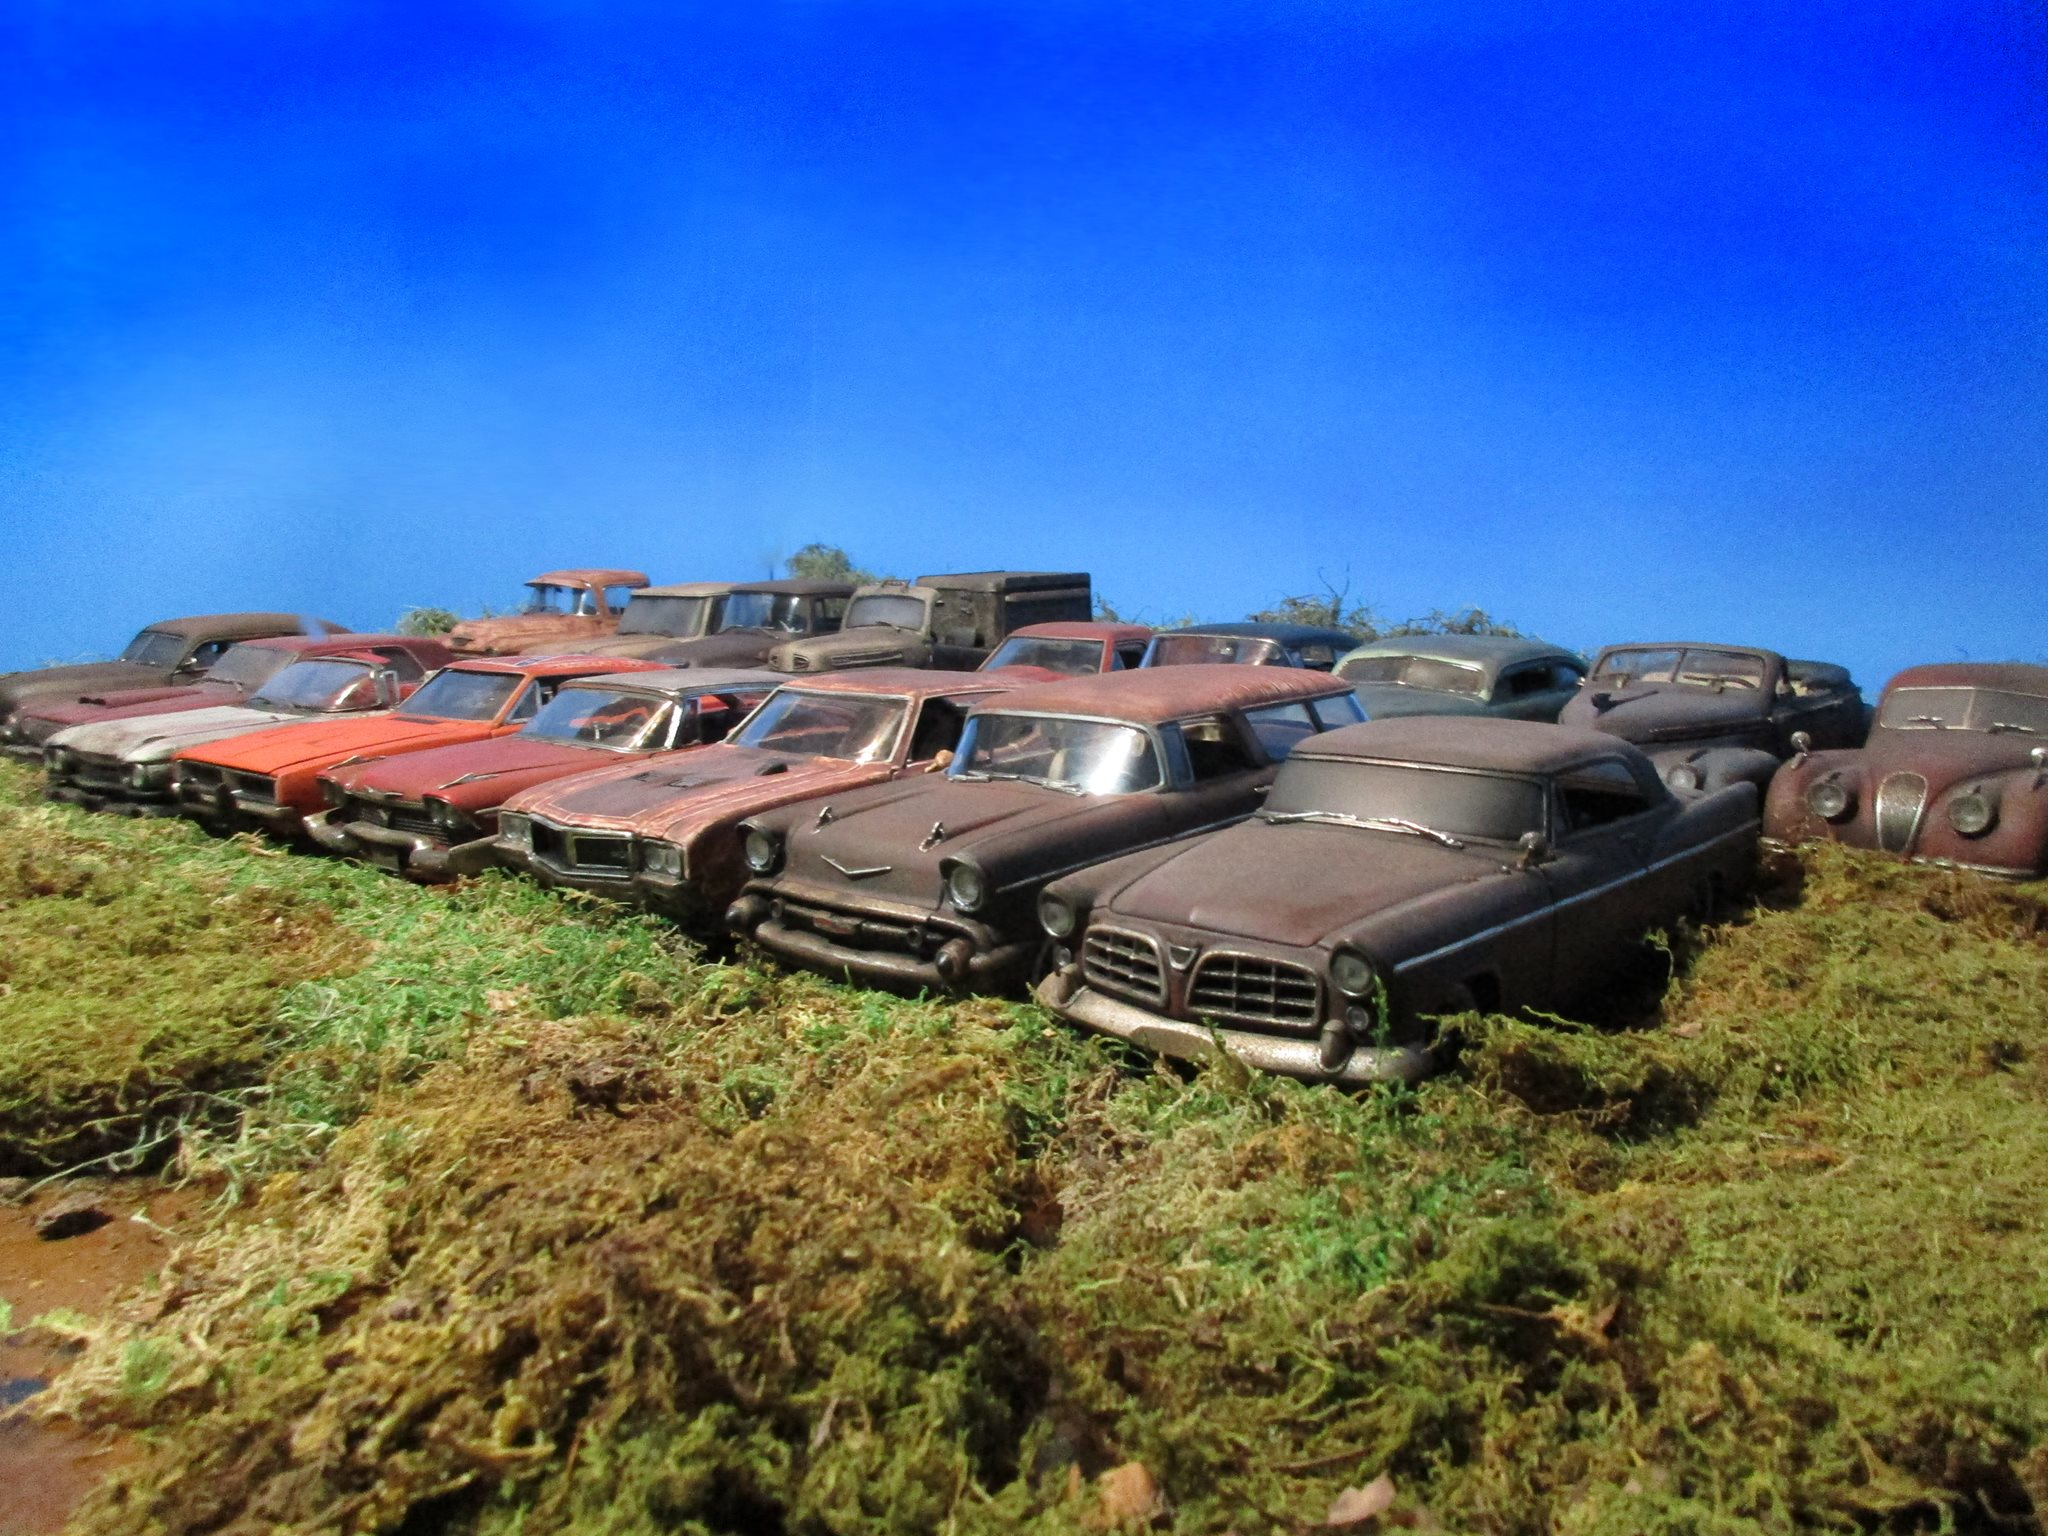 Toasted-Autos-Weathered-Die-Cast-Cars-3